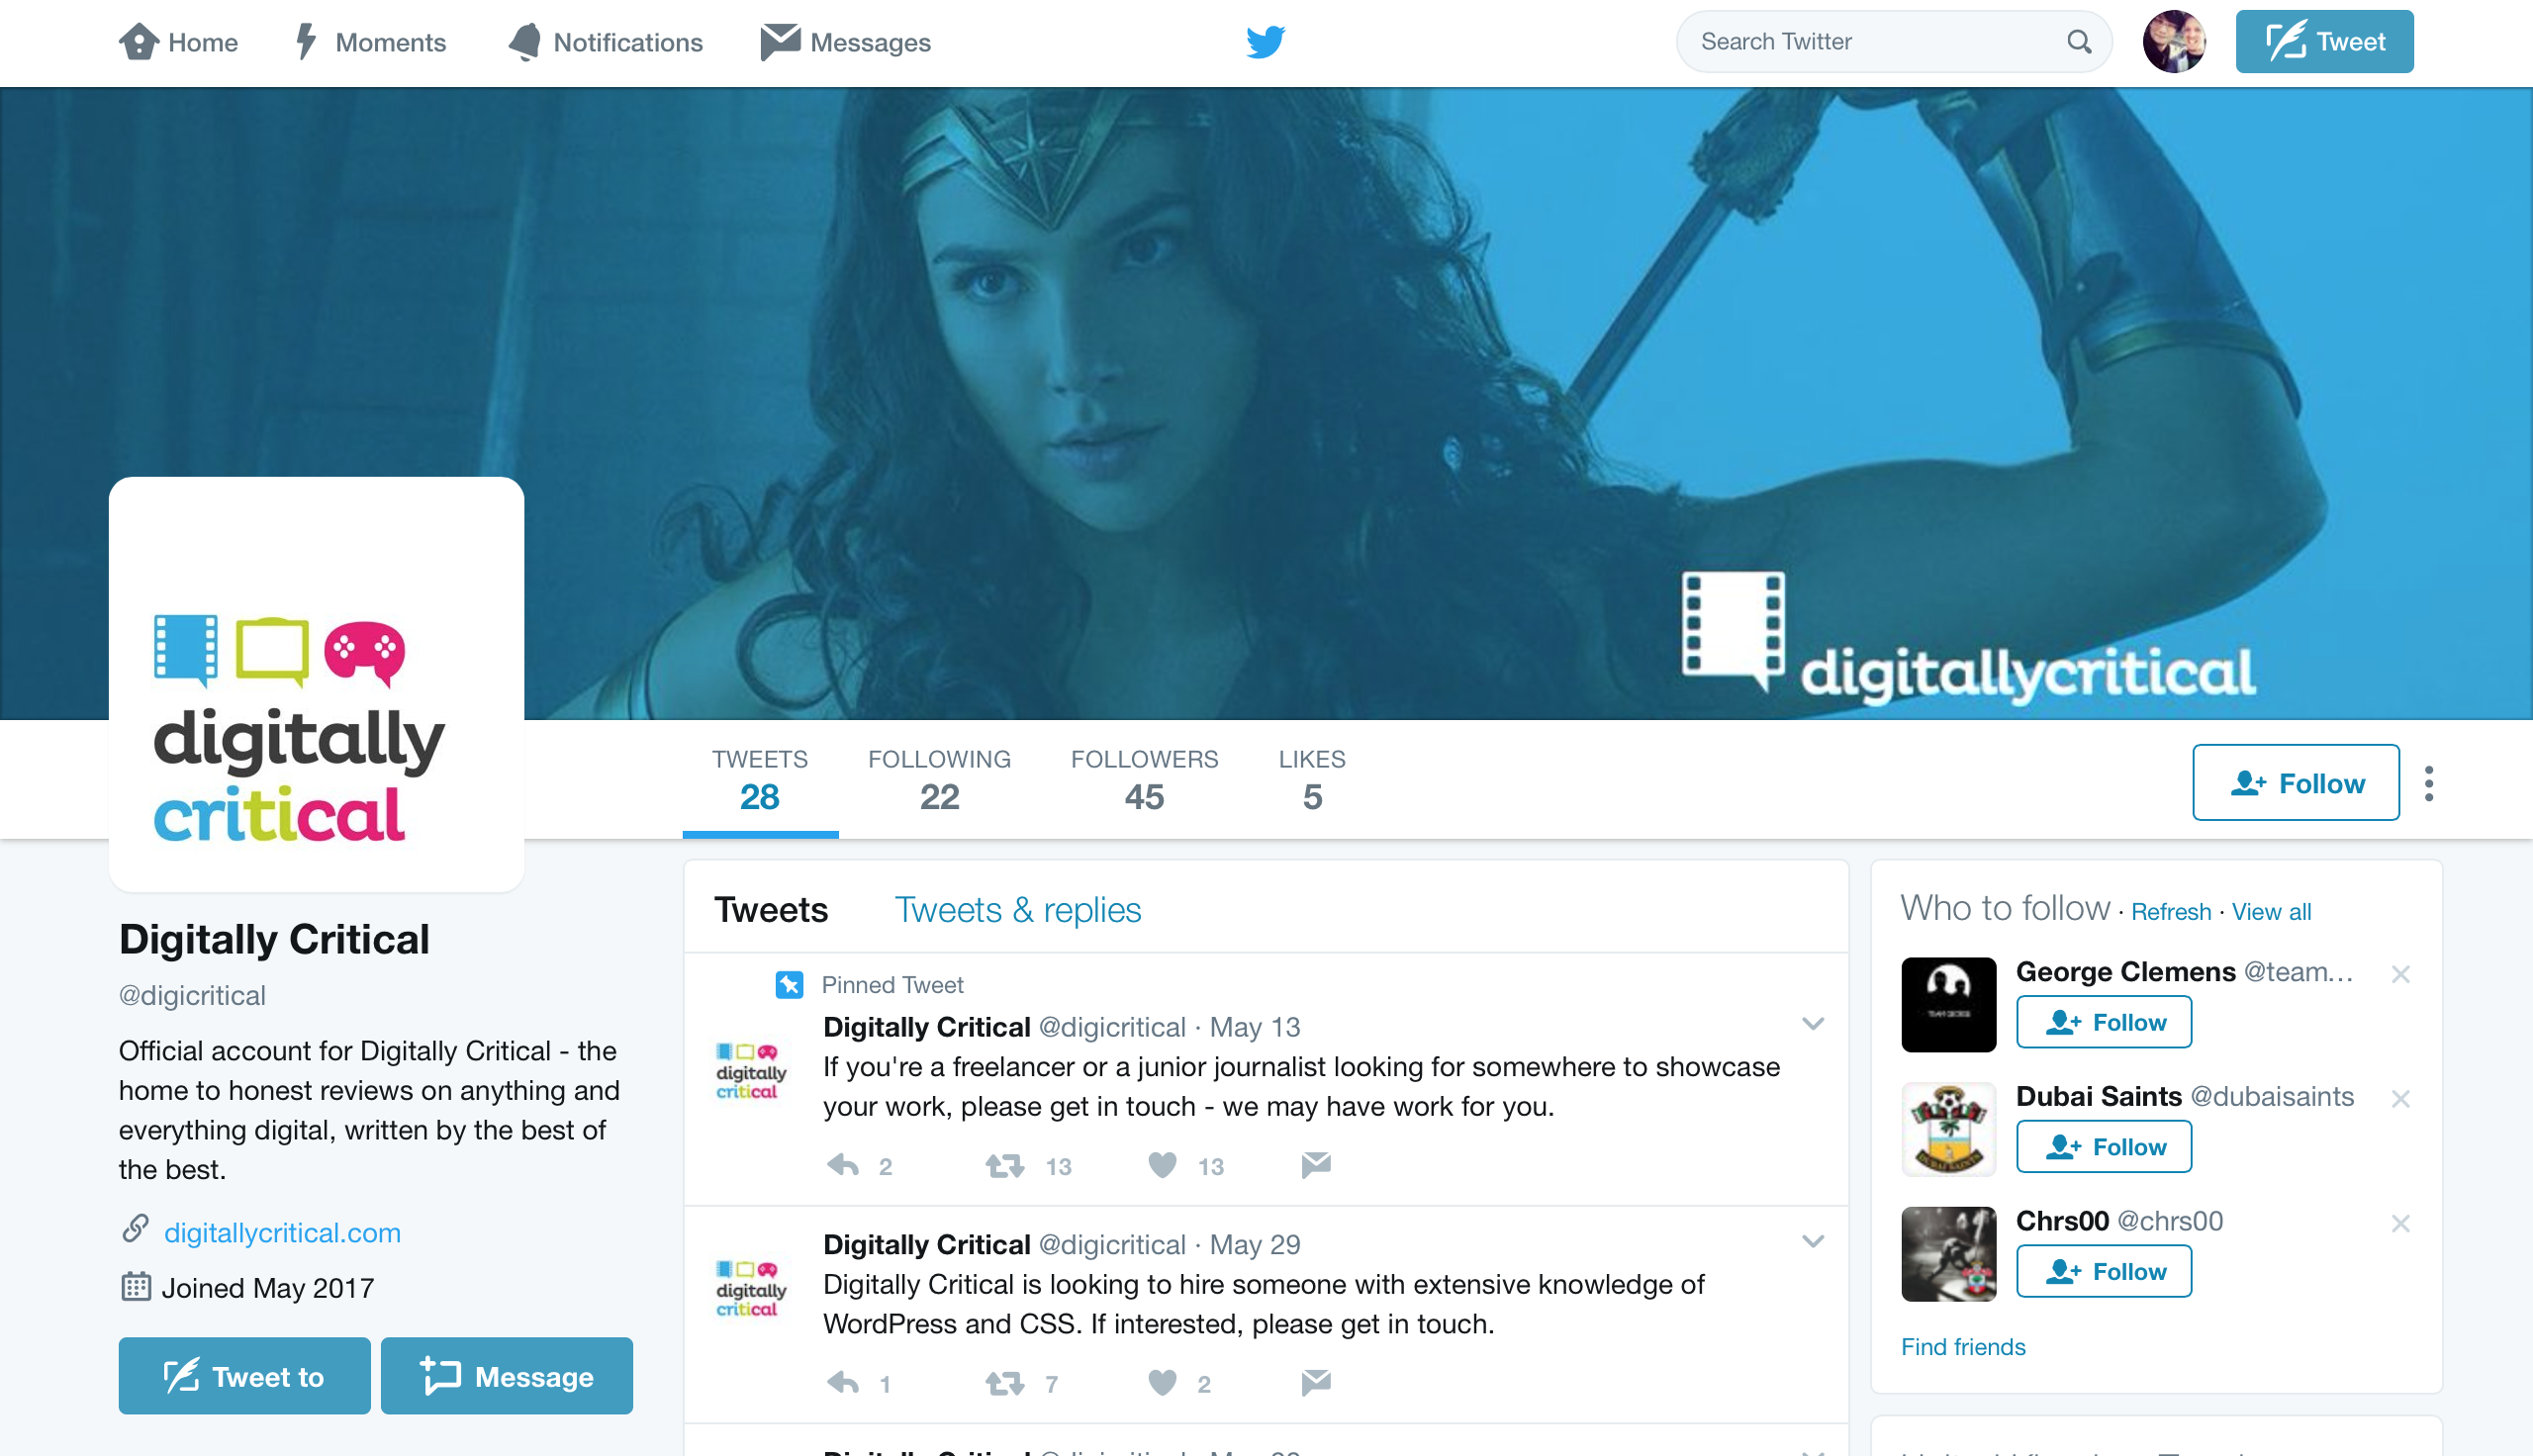 Digitally Critical Twitter Page with New Graphics